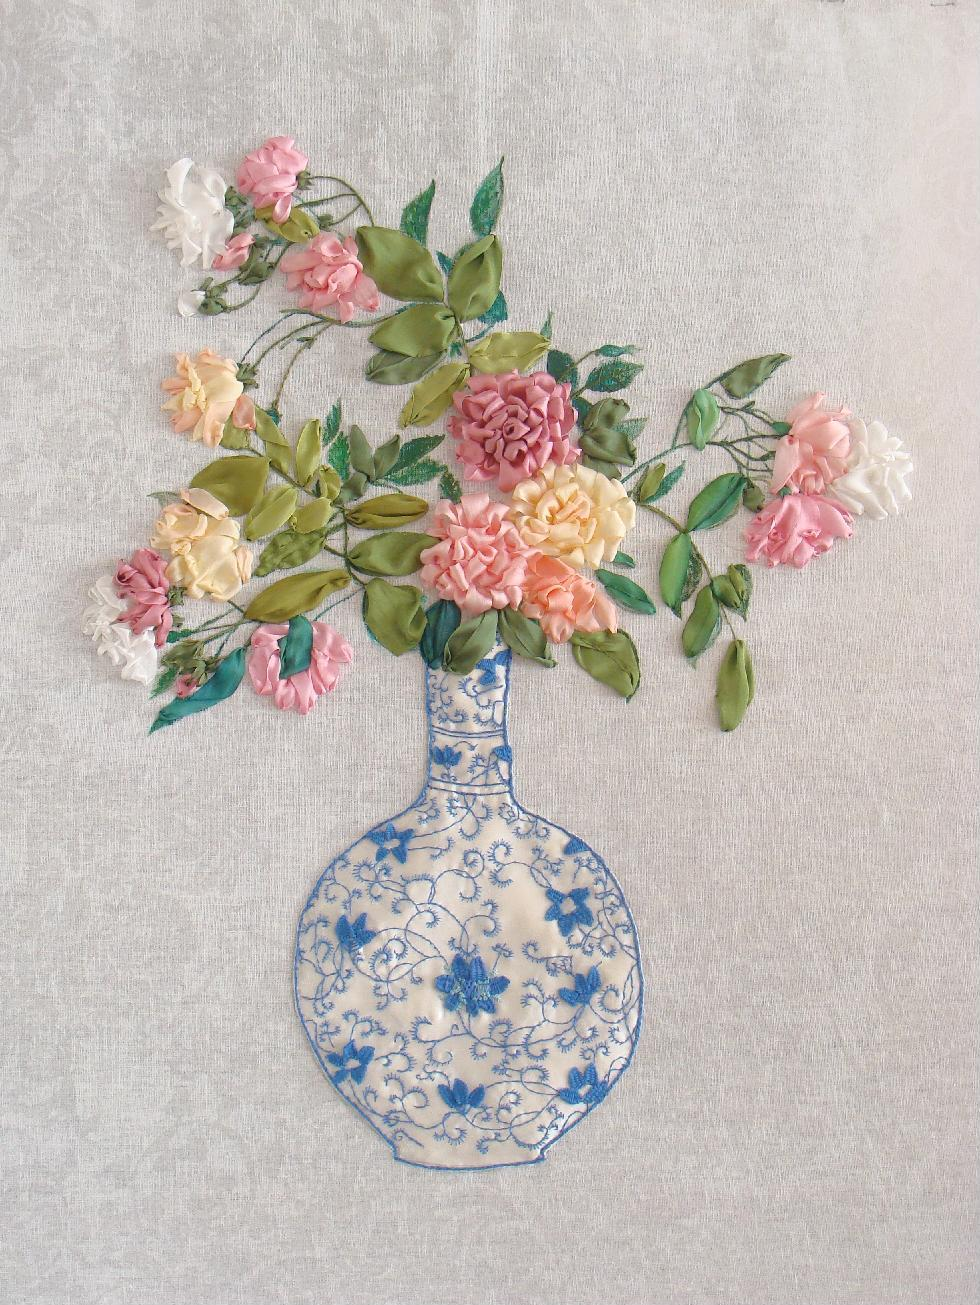 ribbon embroidery, ribbon flowers, SRE, silk ribbon, embroidered roses, silk ribbon roses, painted background, Stumpwork, chinese vase, thread embroidery, art, embroidery designs, hand-made presents